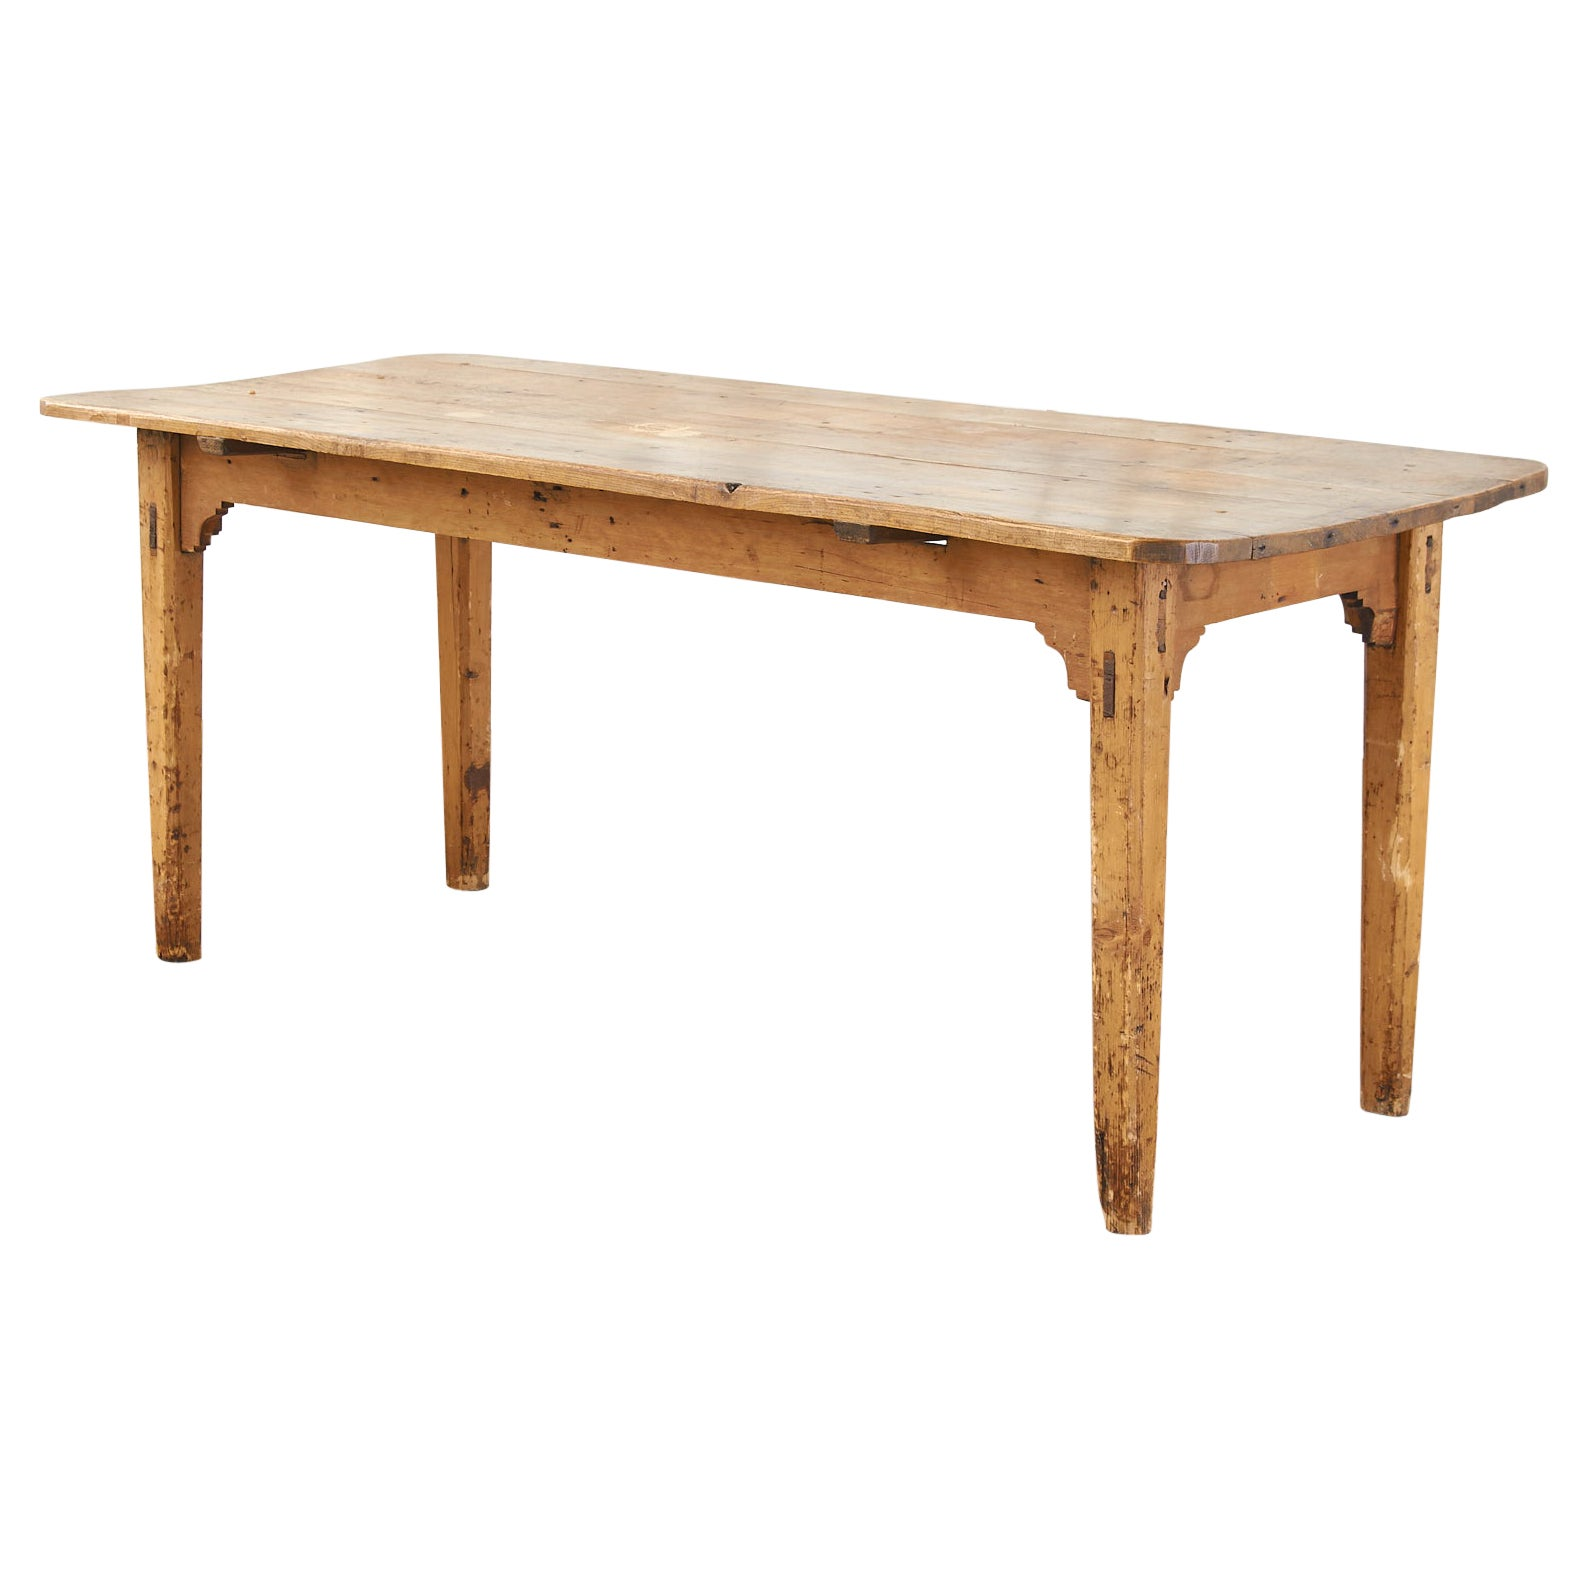 Country English Provincial Fruitwood Farmhouse Dining Table